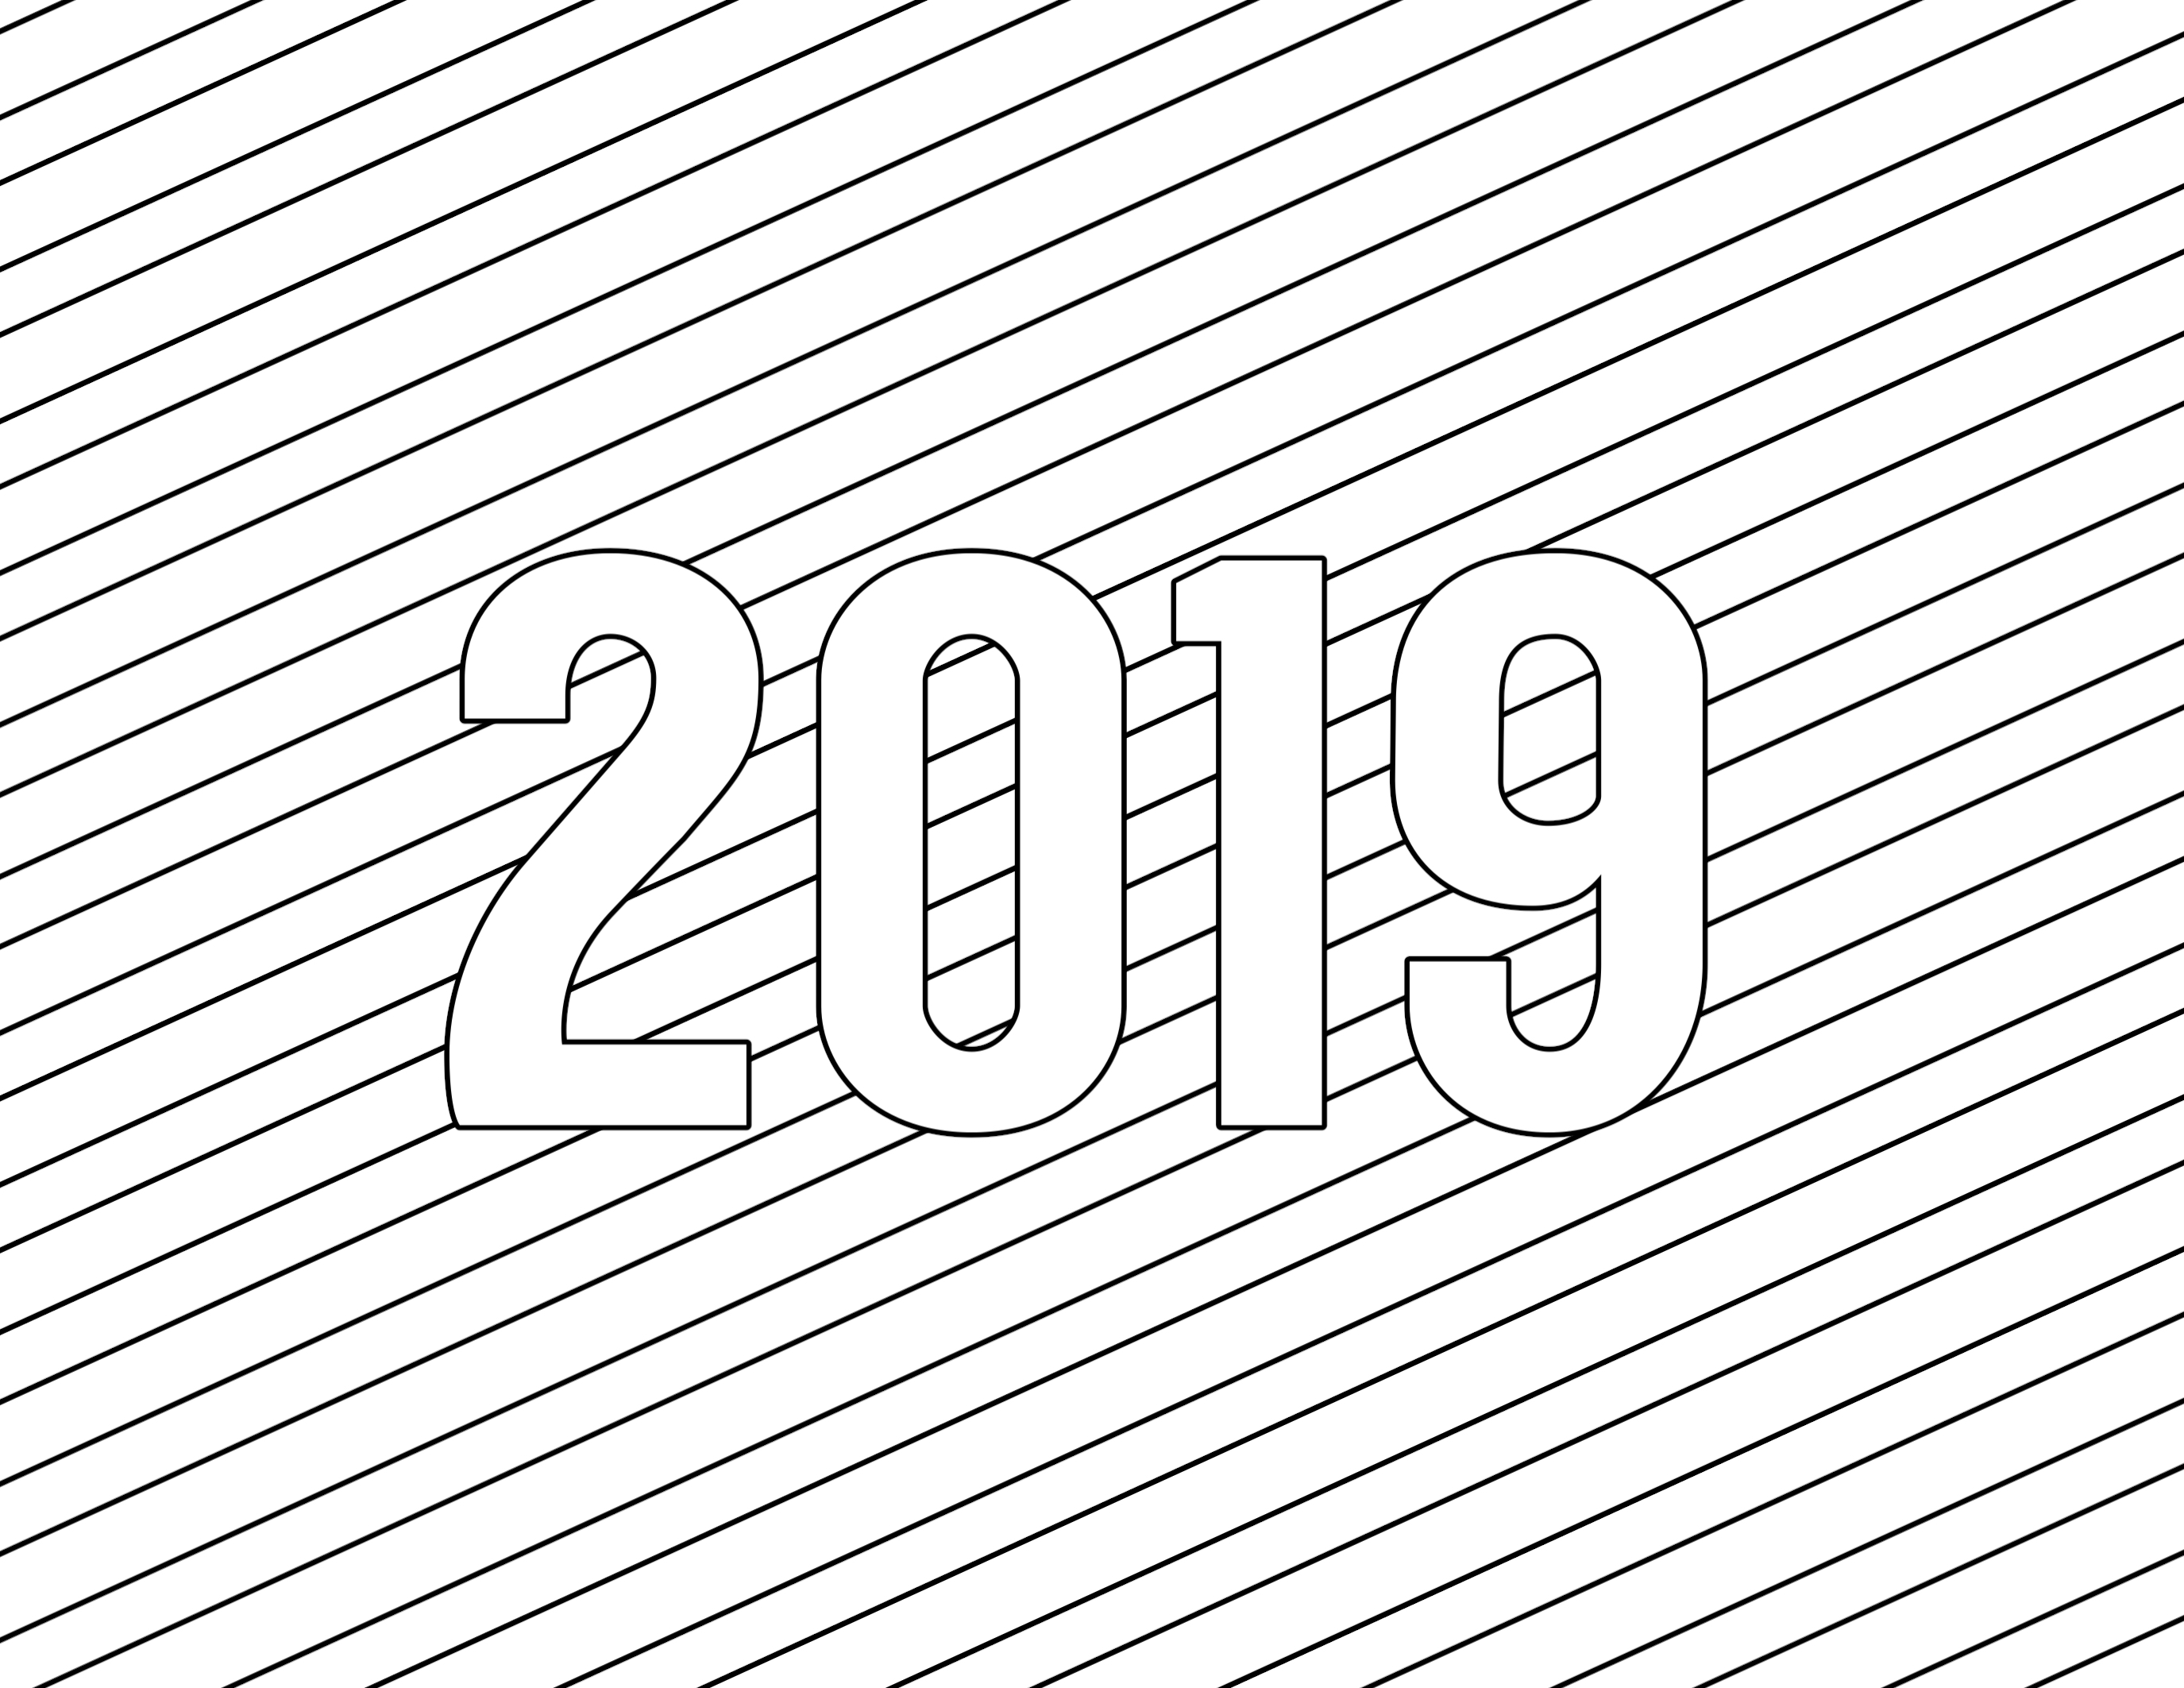 Happy New Year Coloring Pages Free Printable Paper Trail Design